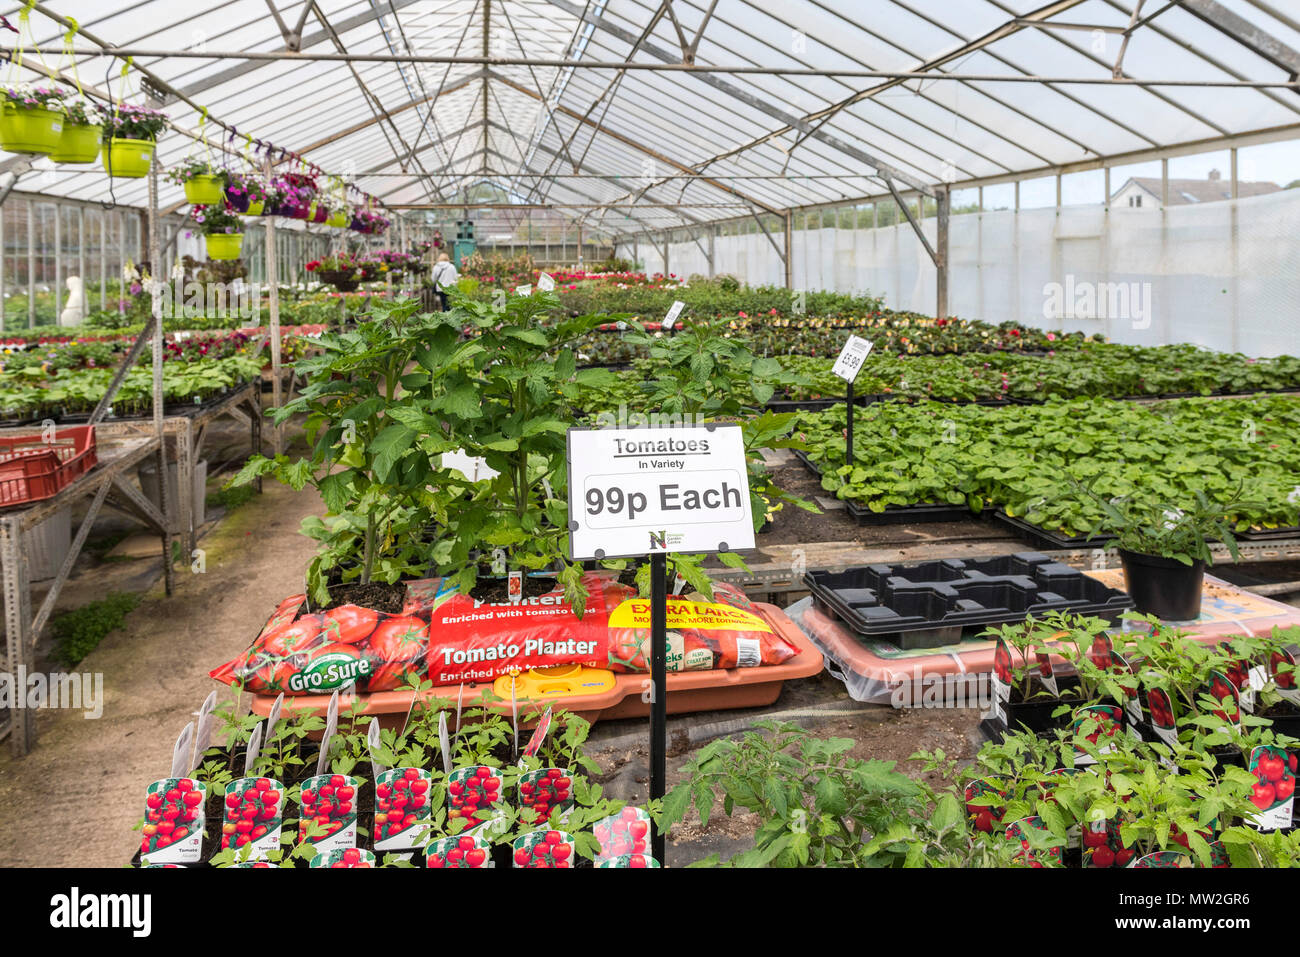 Plants for sale in a garden centre nursery in the UK. - Stock Image